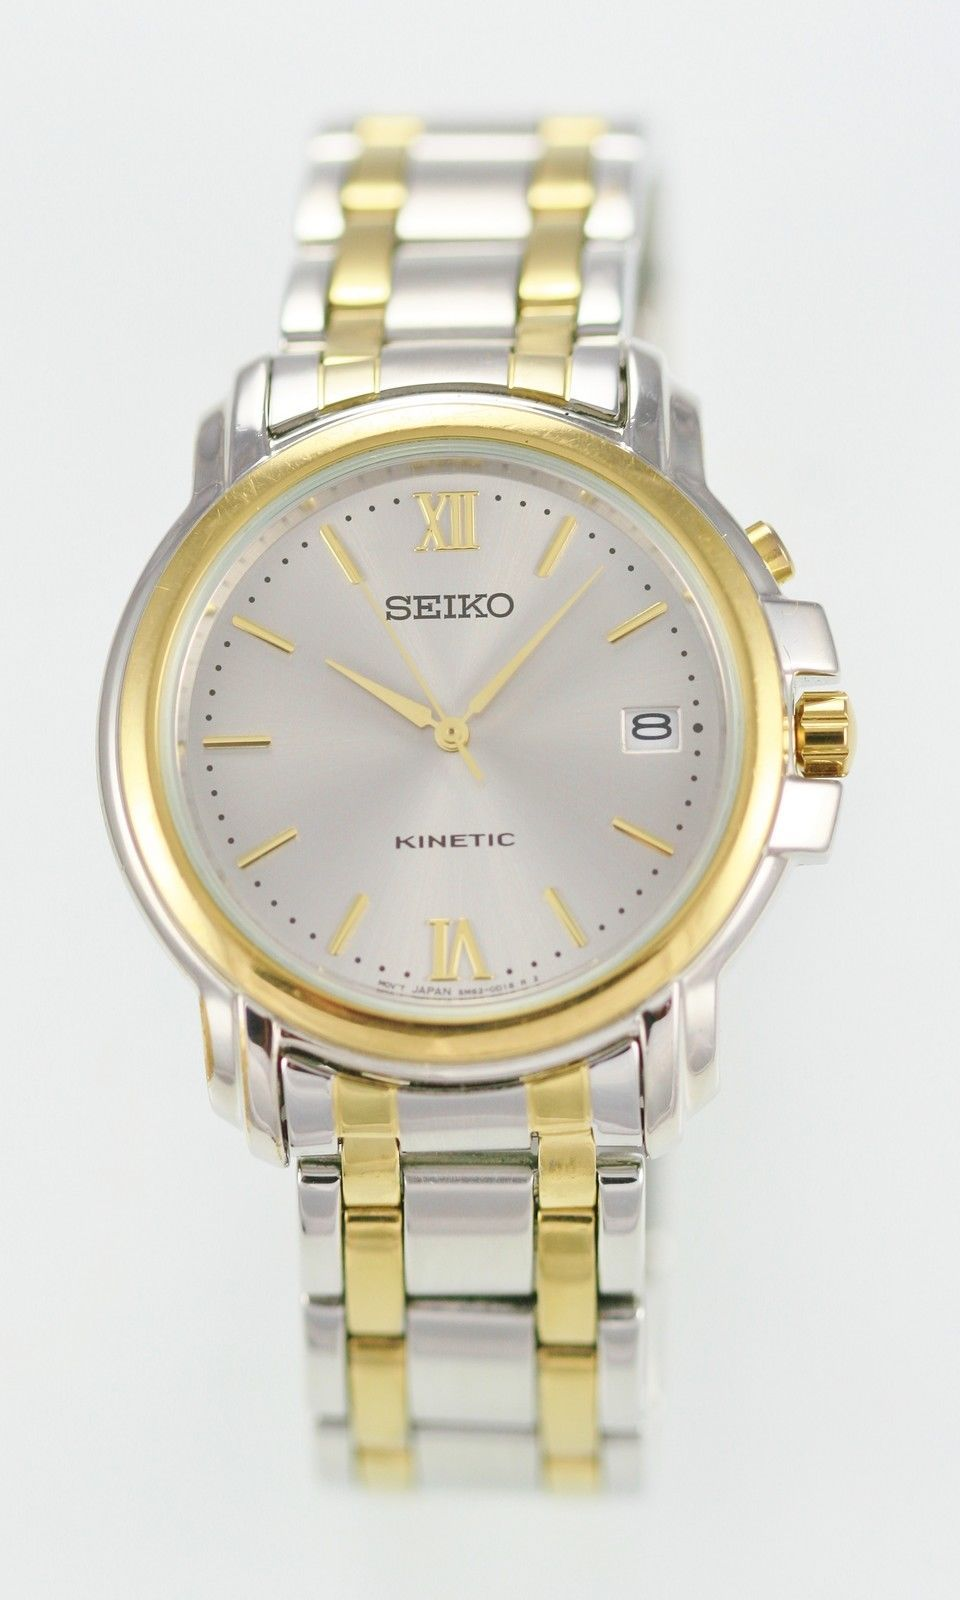 Seiko Kinetic Men's Silver Gold Stainless Steel Casual Easy Read Date Watch